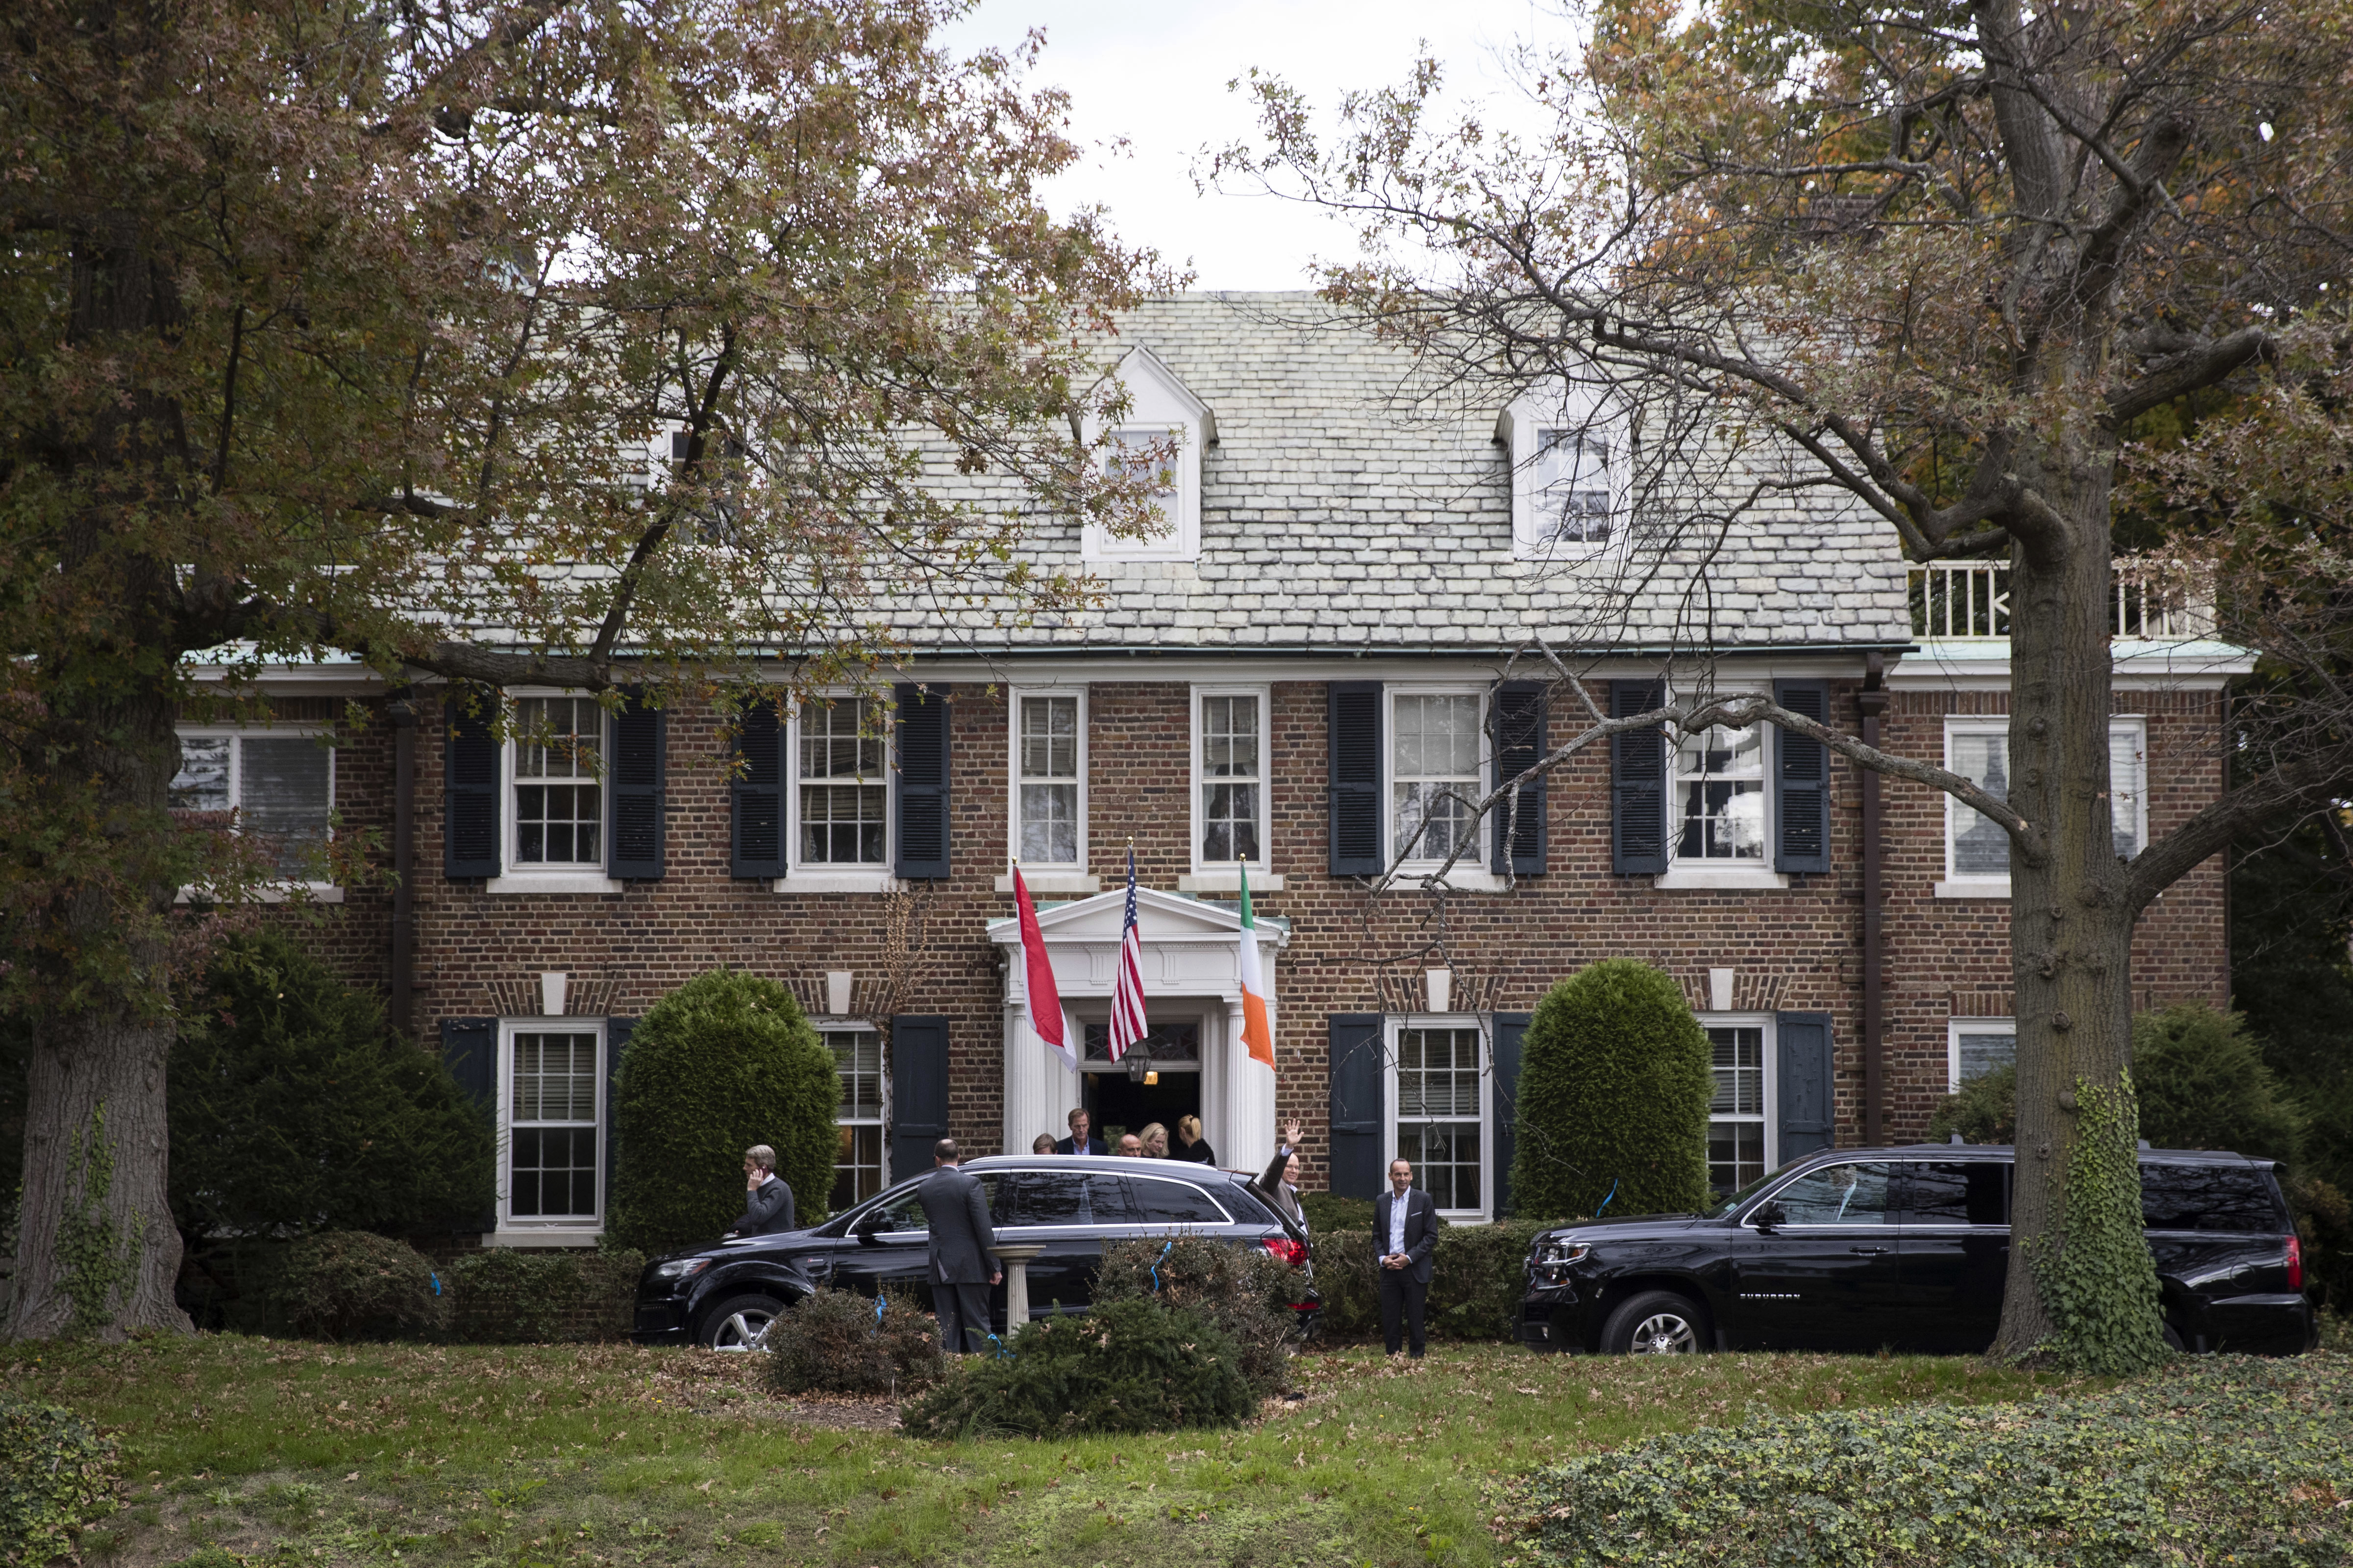 A stately brick colonial with the flags of Monaco hanging out front.